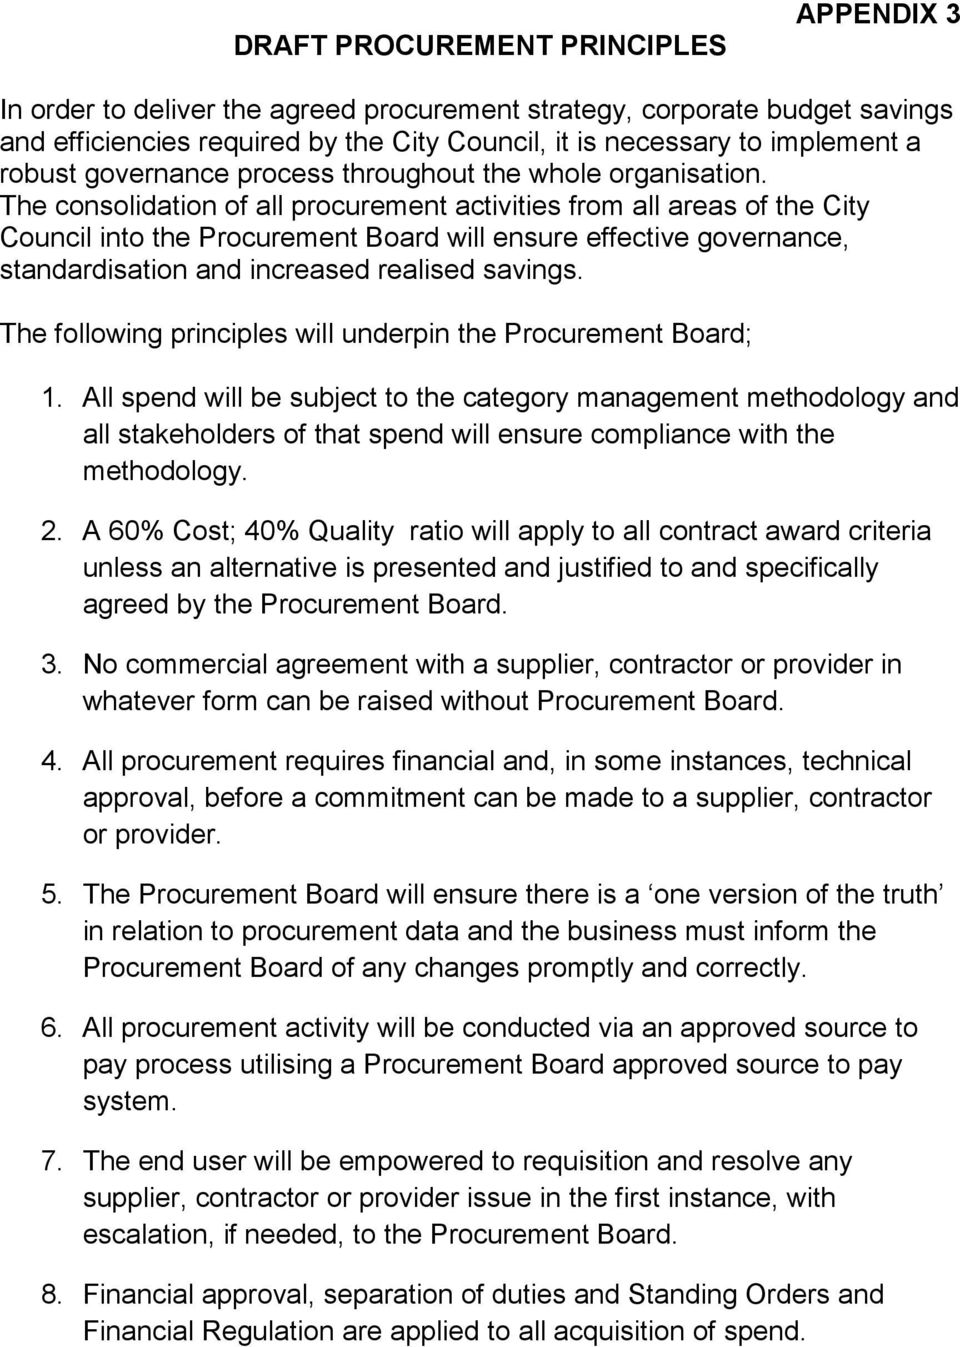 The consolidation of all procurement activities from all areas of the City Council into the Procurement Board will ensure effective governance, standardisation and increased realised savings.